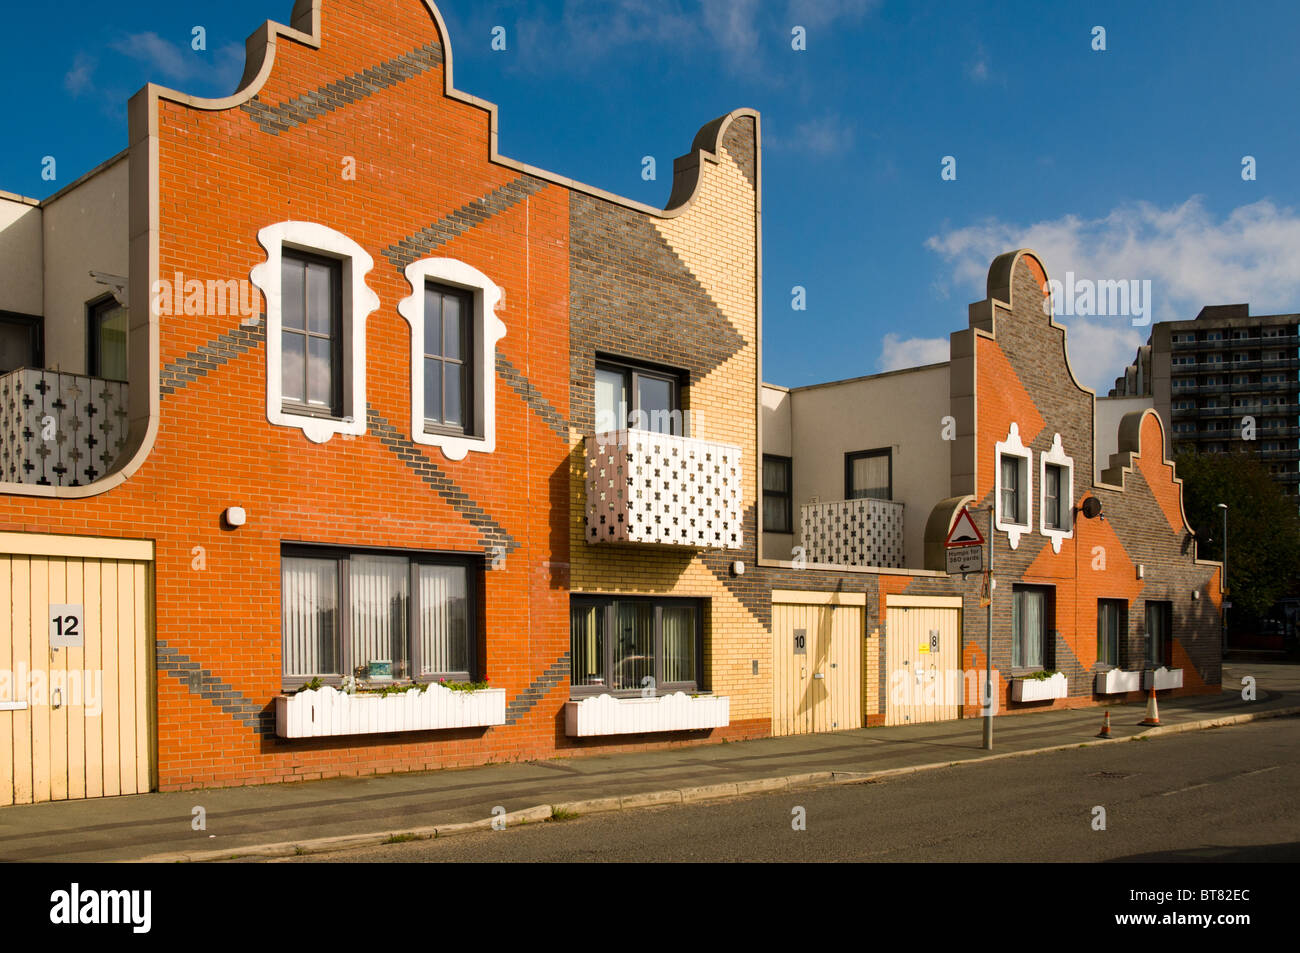 Social housing development, designed by FAT, at New Islington Square, Manchester, England, UK - Stock Image